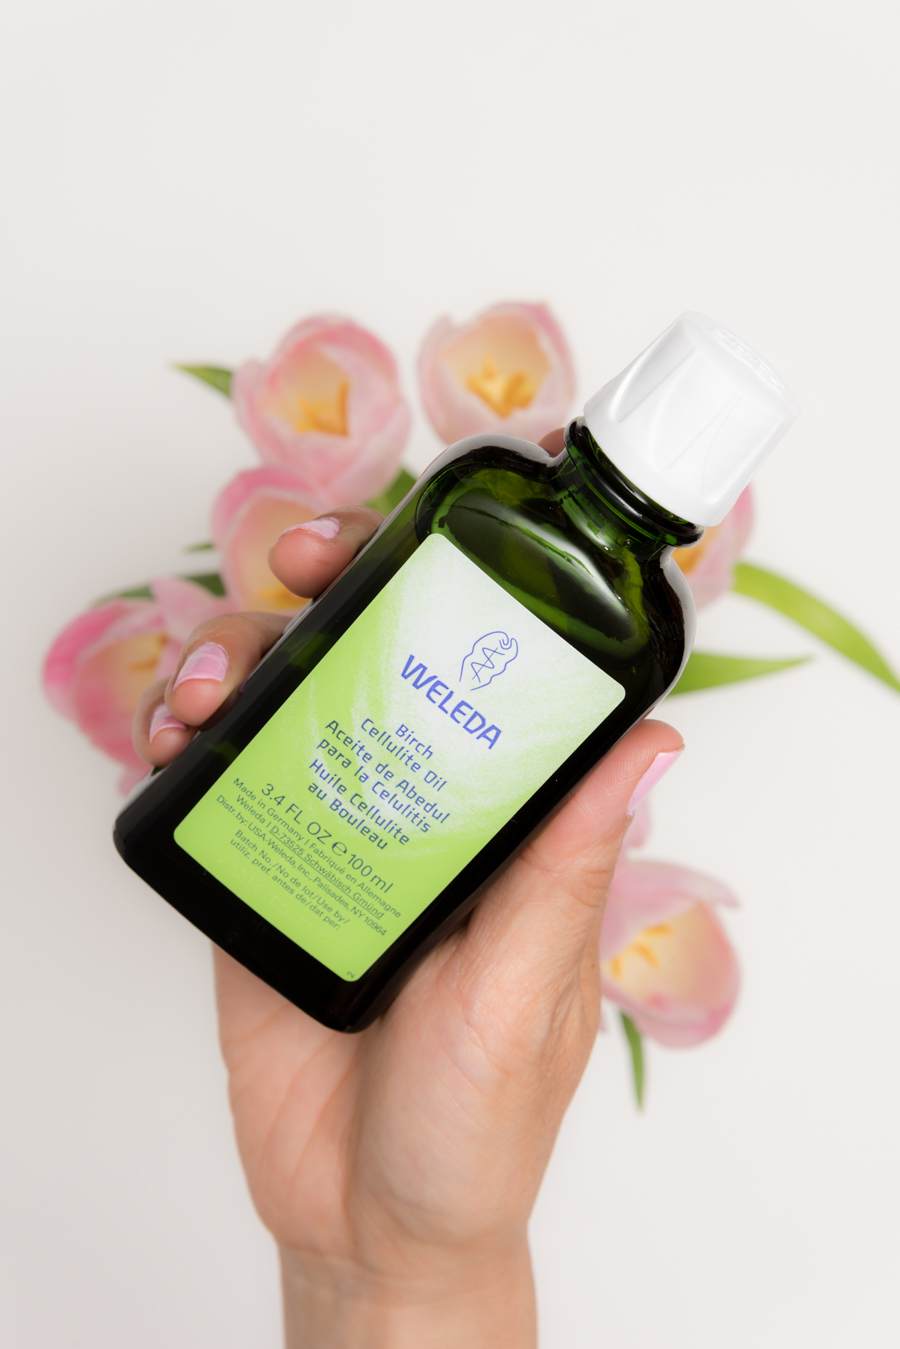 ROCK MAMA NYC LIFESTYLE BLOG -Great Gift For A New Mom - Weleda Birch Cellulite Oil